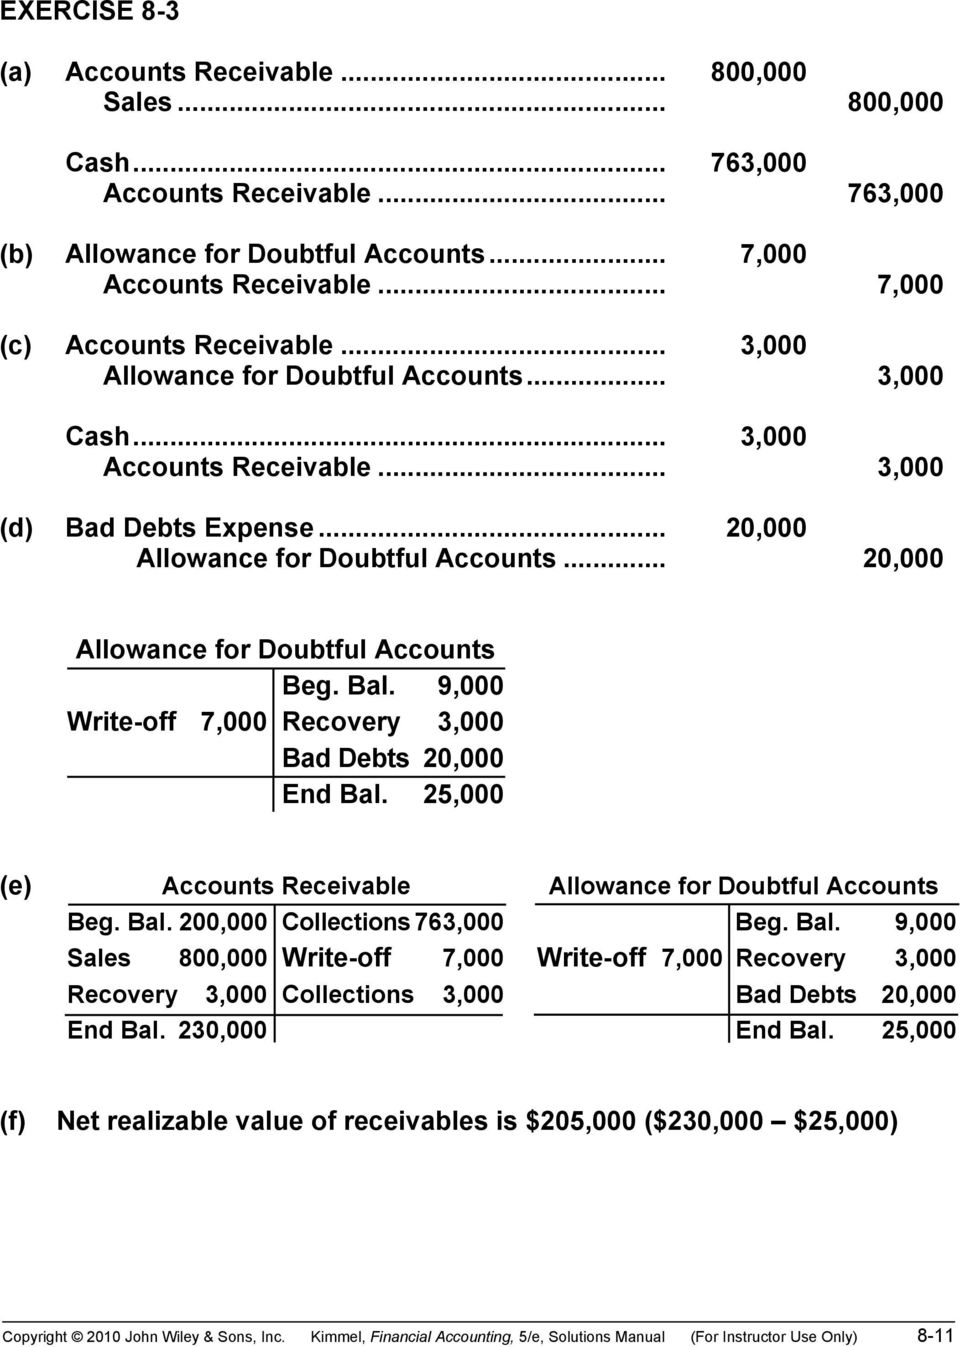 .. 20,000 Allowance for Doubtful Accounts Beg. Bal. 9,000 Write-off 7,000 Recovery 3,000 Bad Debts 20,000 End Bal. 25,000 (e) Accounts Receivable Allowance for Doubtful Accounts Beg. Bal. 200,000 Collections 763,000 Beg.